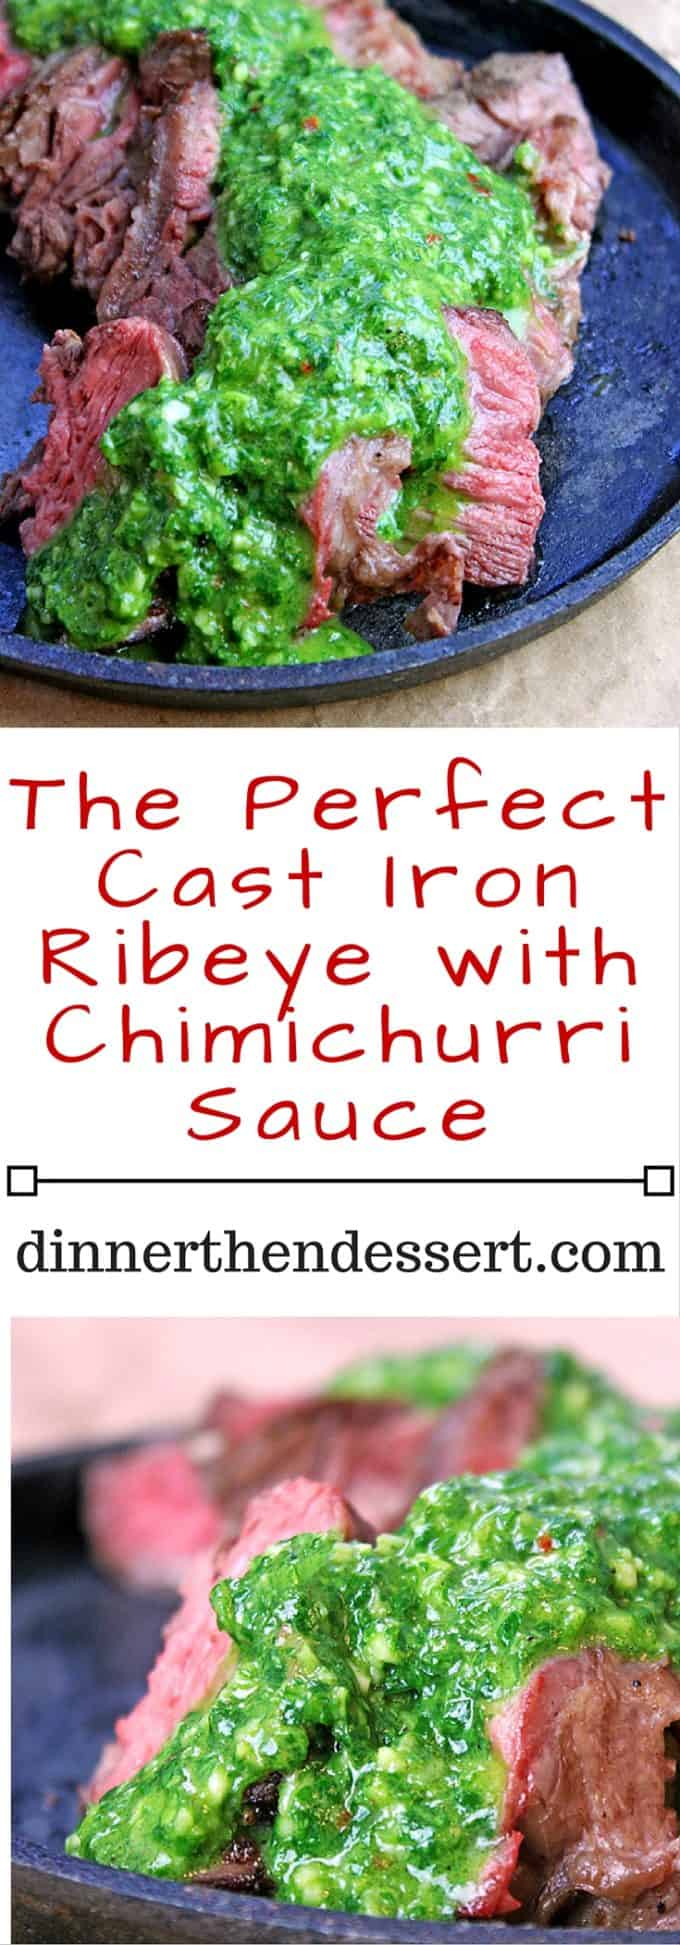 The Perfect Cast Iron Ribeye with Chimichurri Sauce L